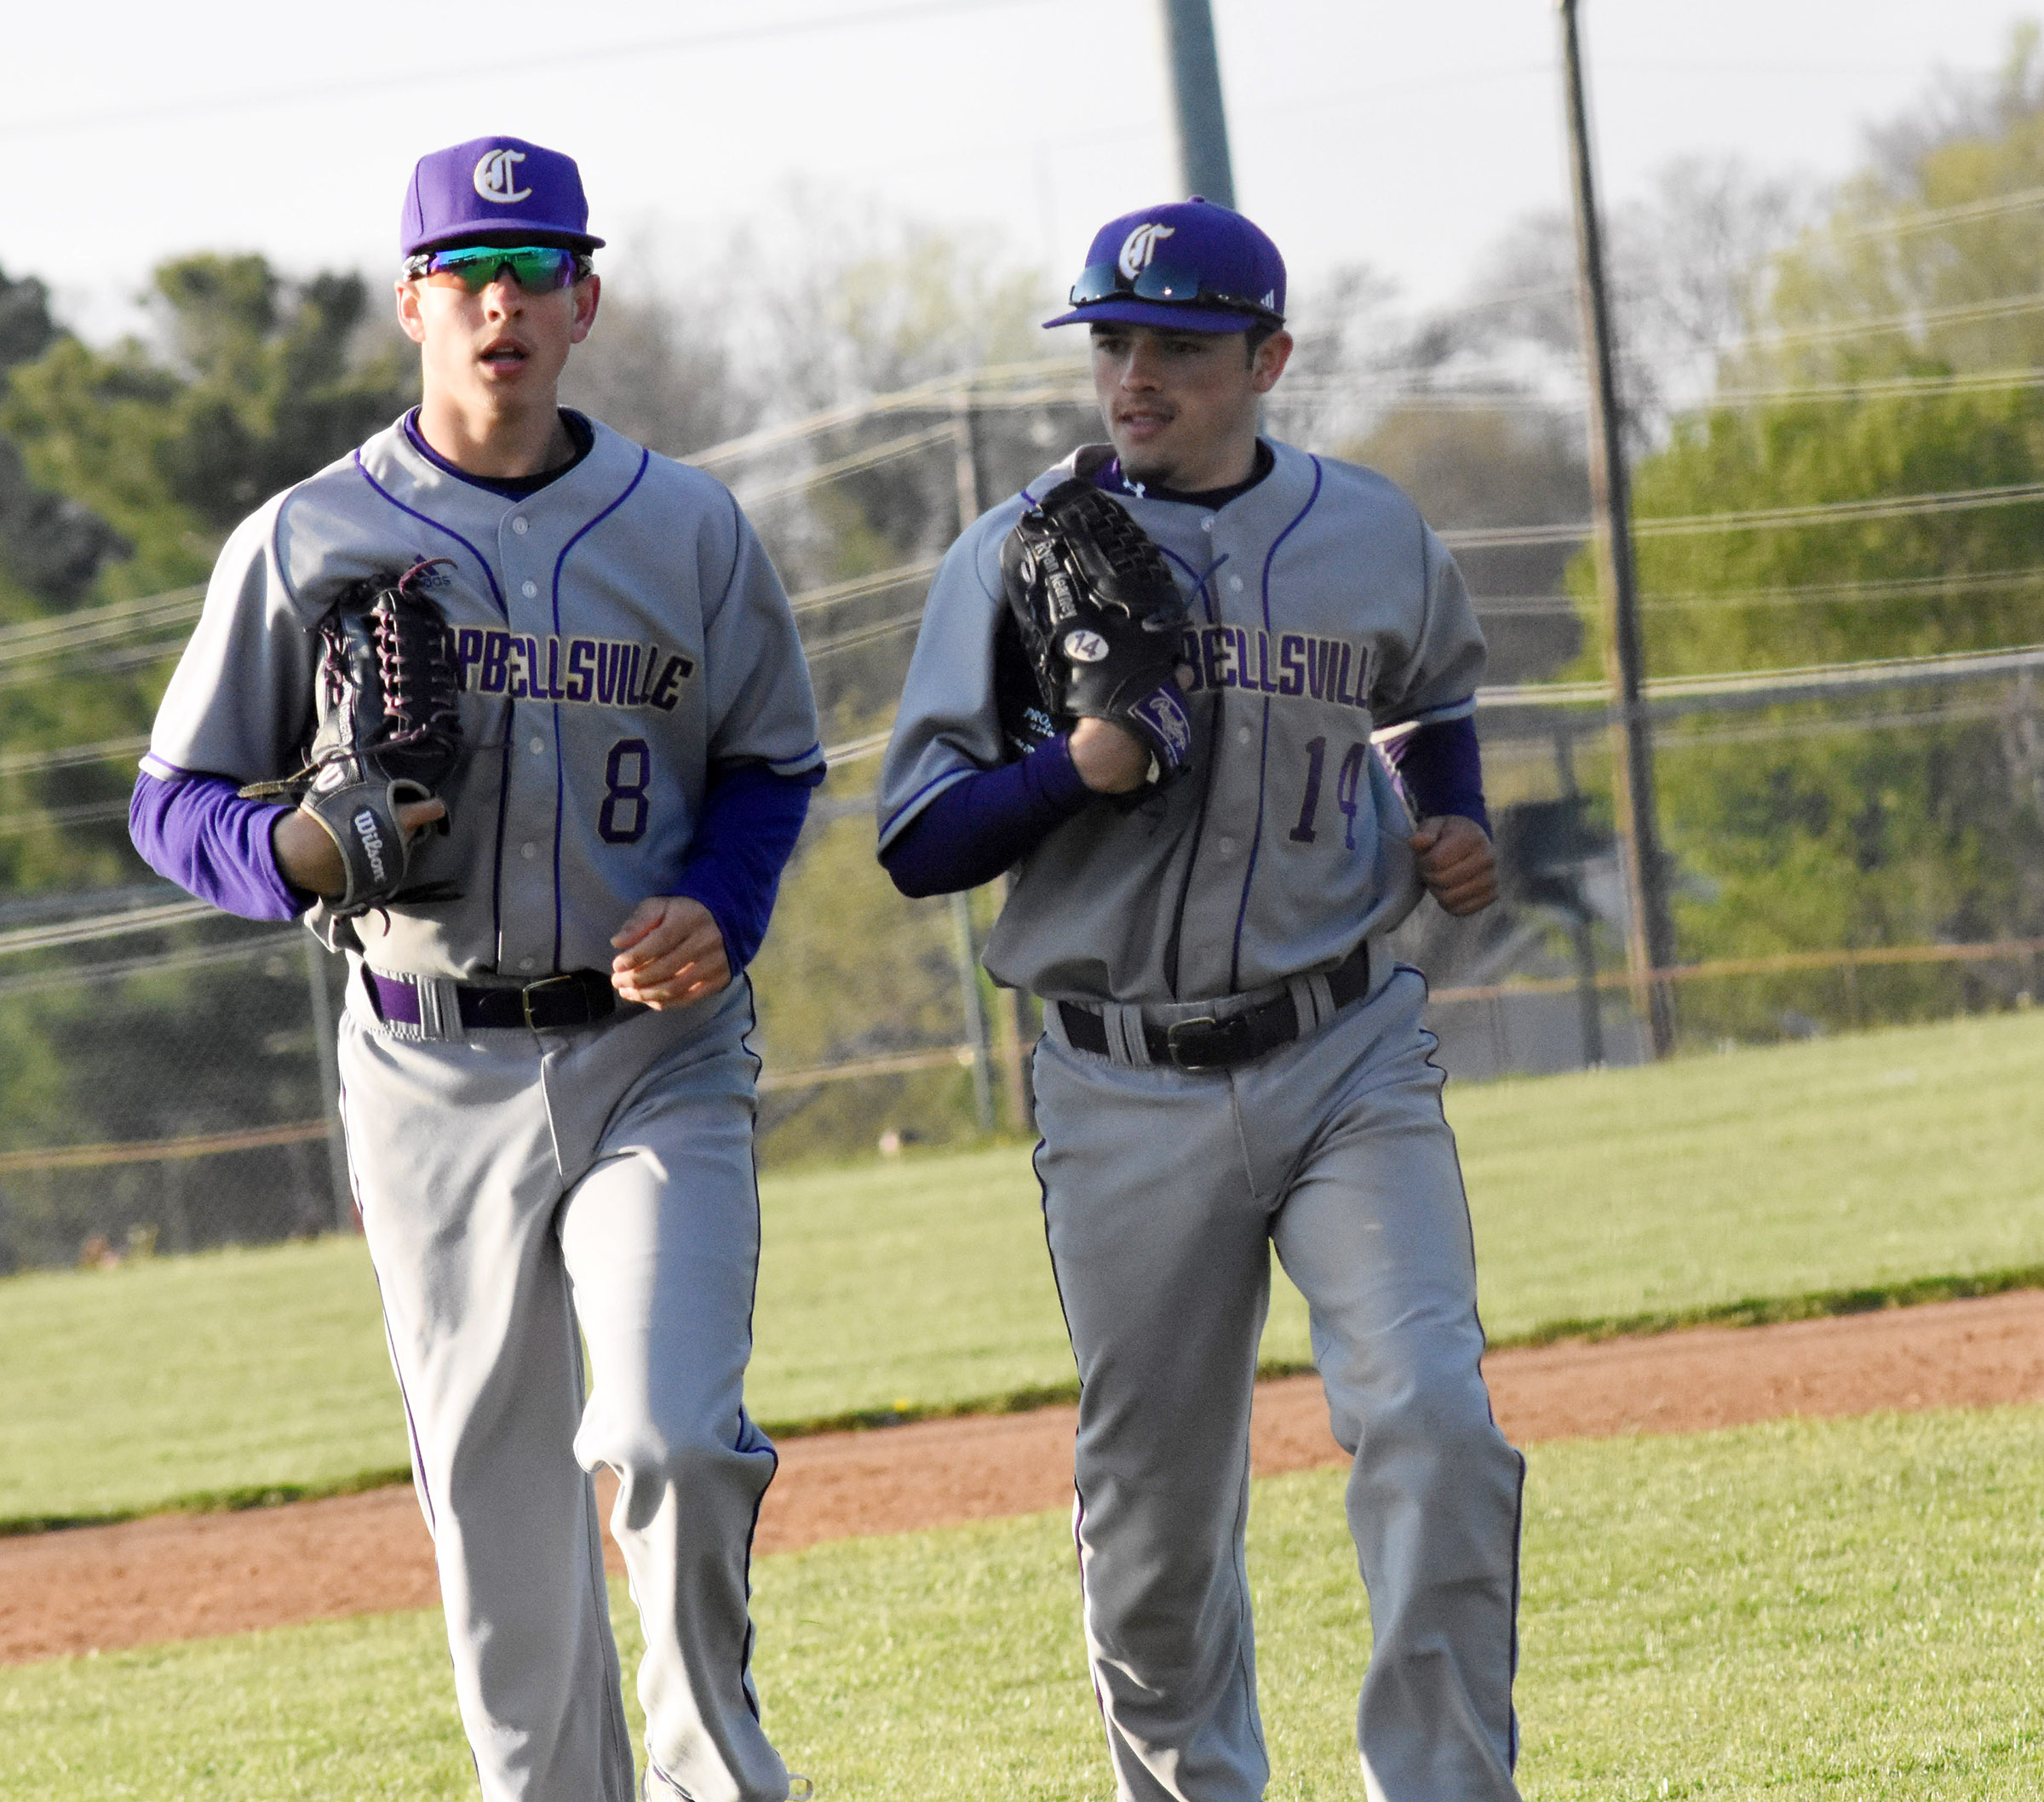 CHS freshman John Orberson, at left, and junior Ryan Kearney run to the dugout.